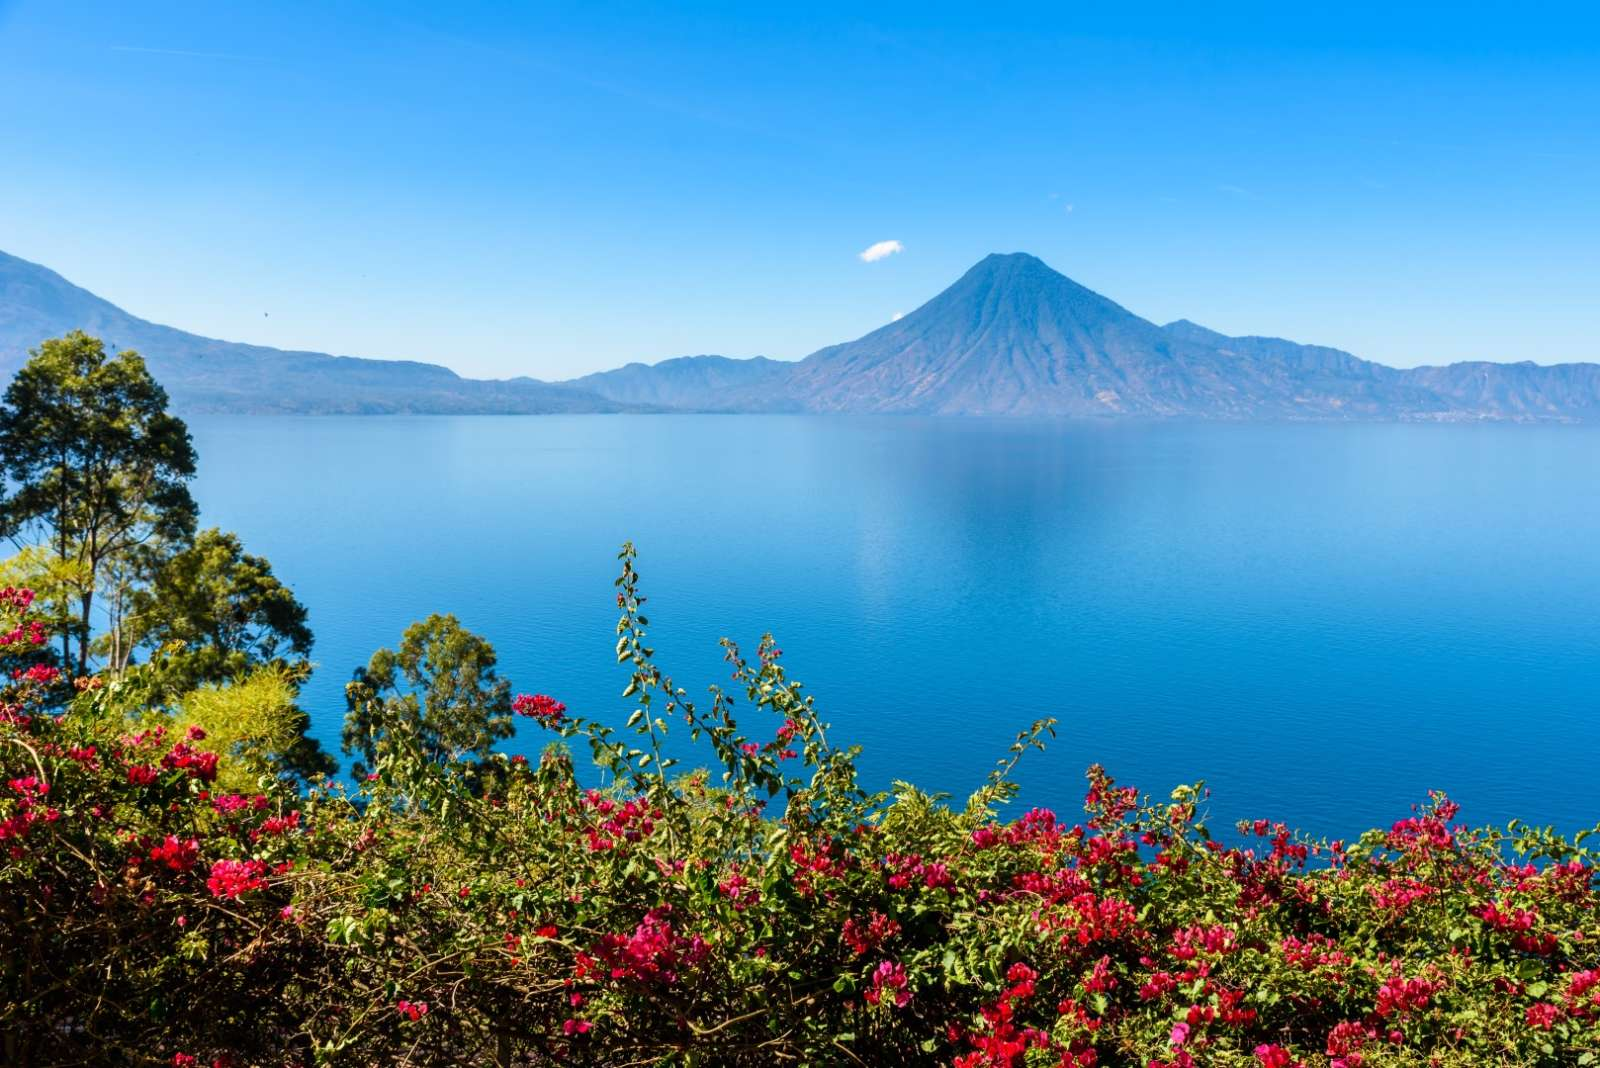 Panoramic view of Lake Atitlan, Guatemala through flowers